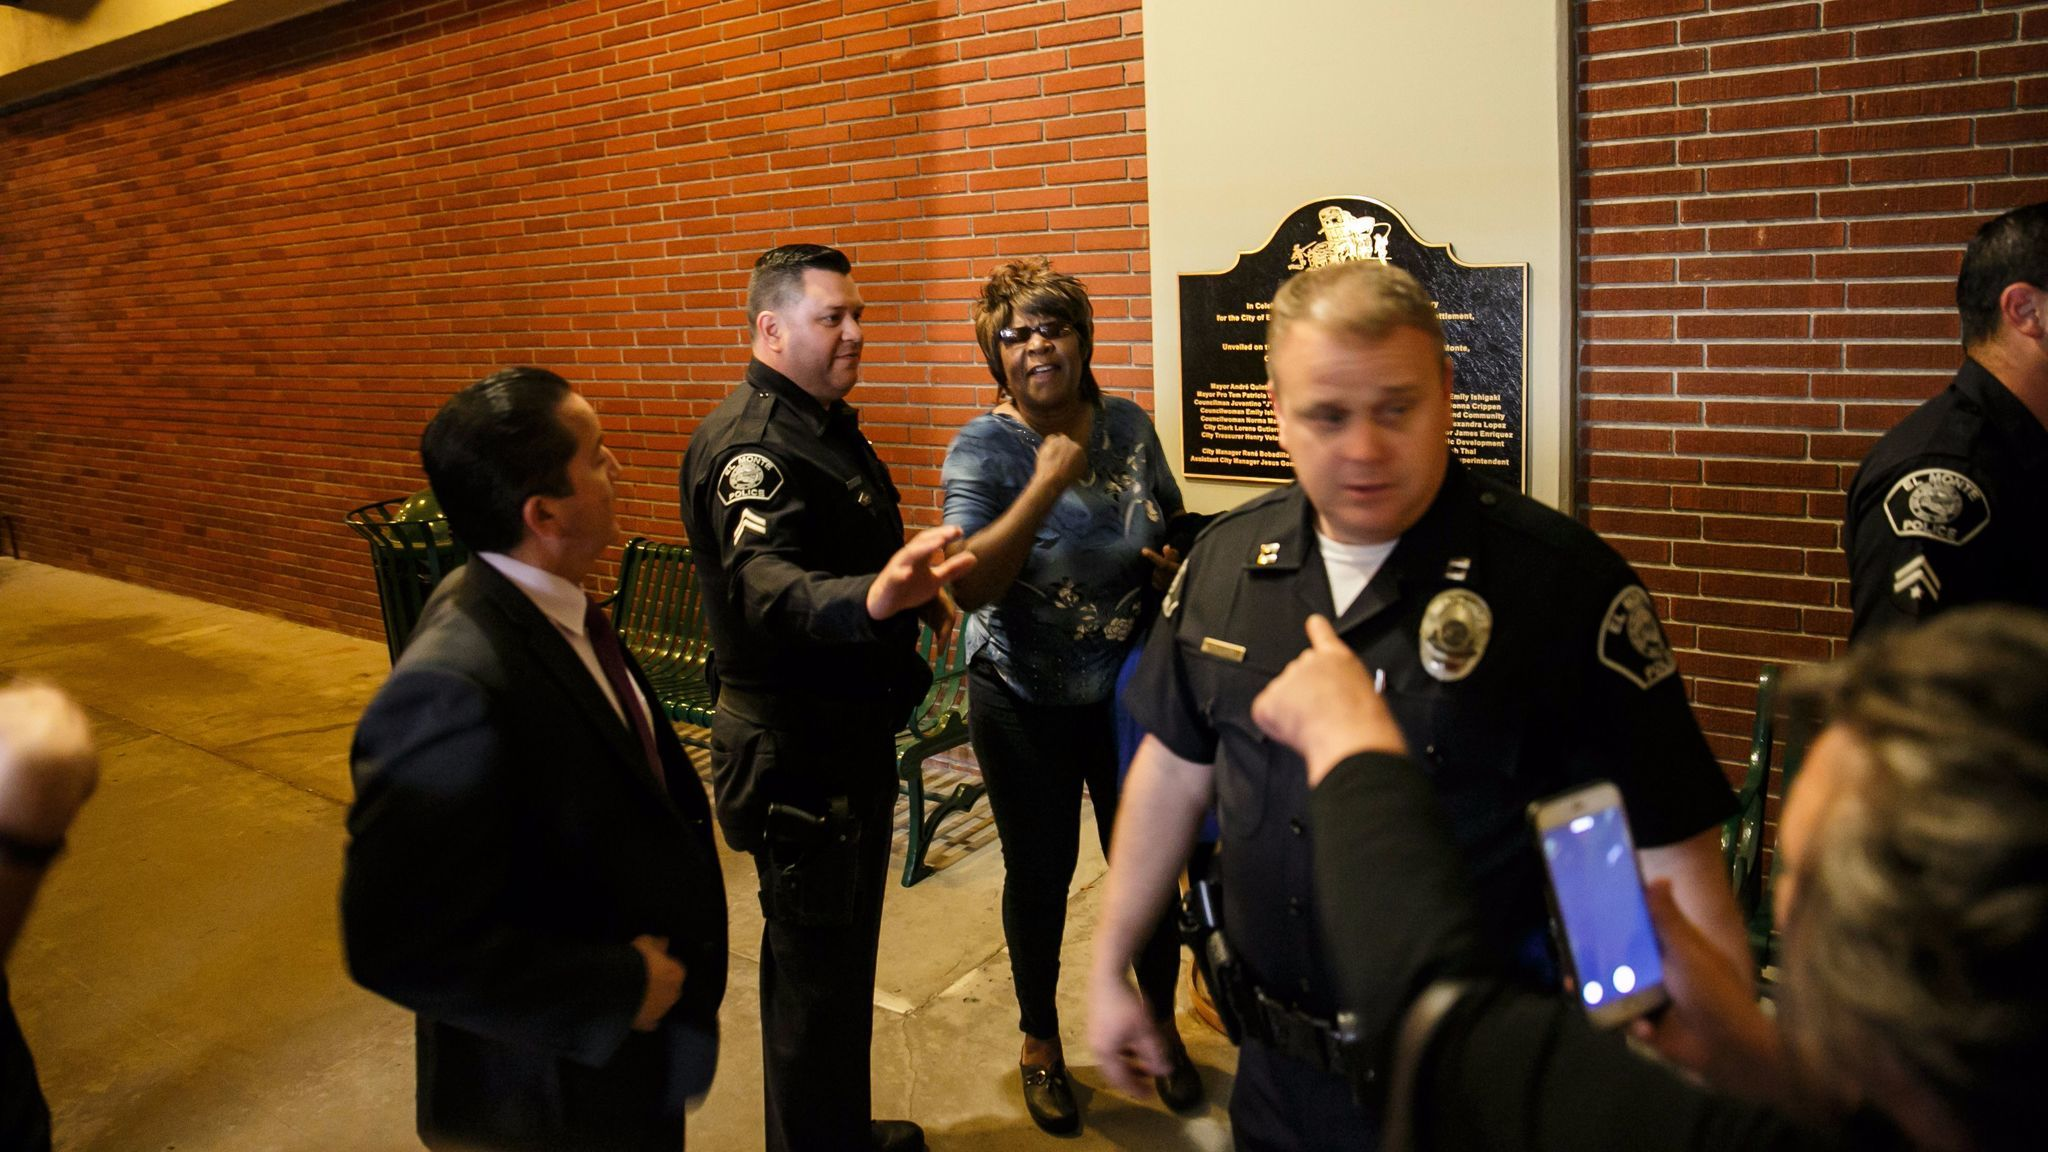 Chanell Temple is pulled aside by police after a brief scuffle broke out outside an El Monte City Council meeting on May 3. Pointing at her is El Monte resident Veronica Tomas, with back to camera.